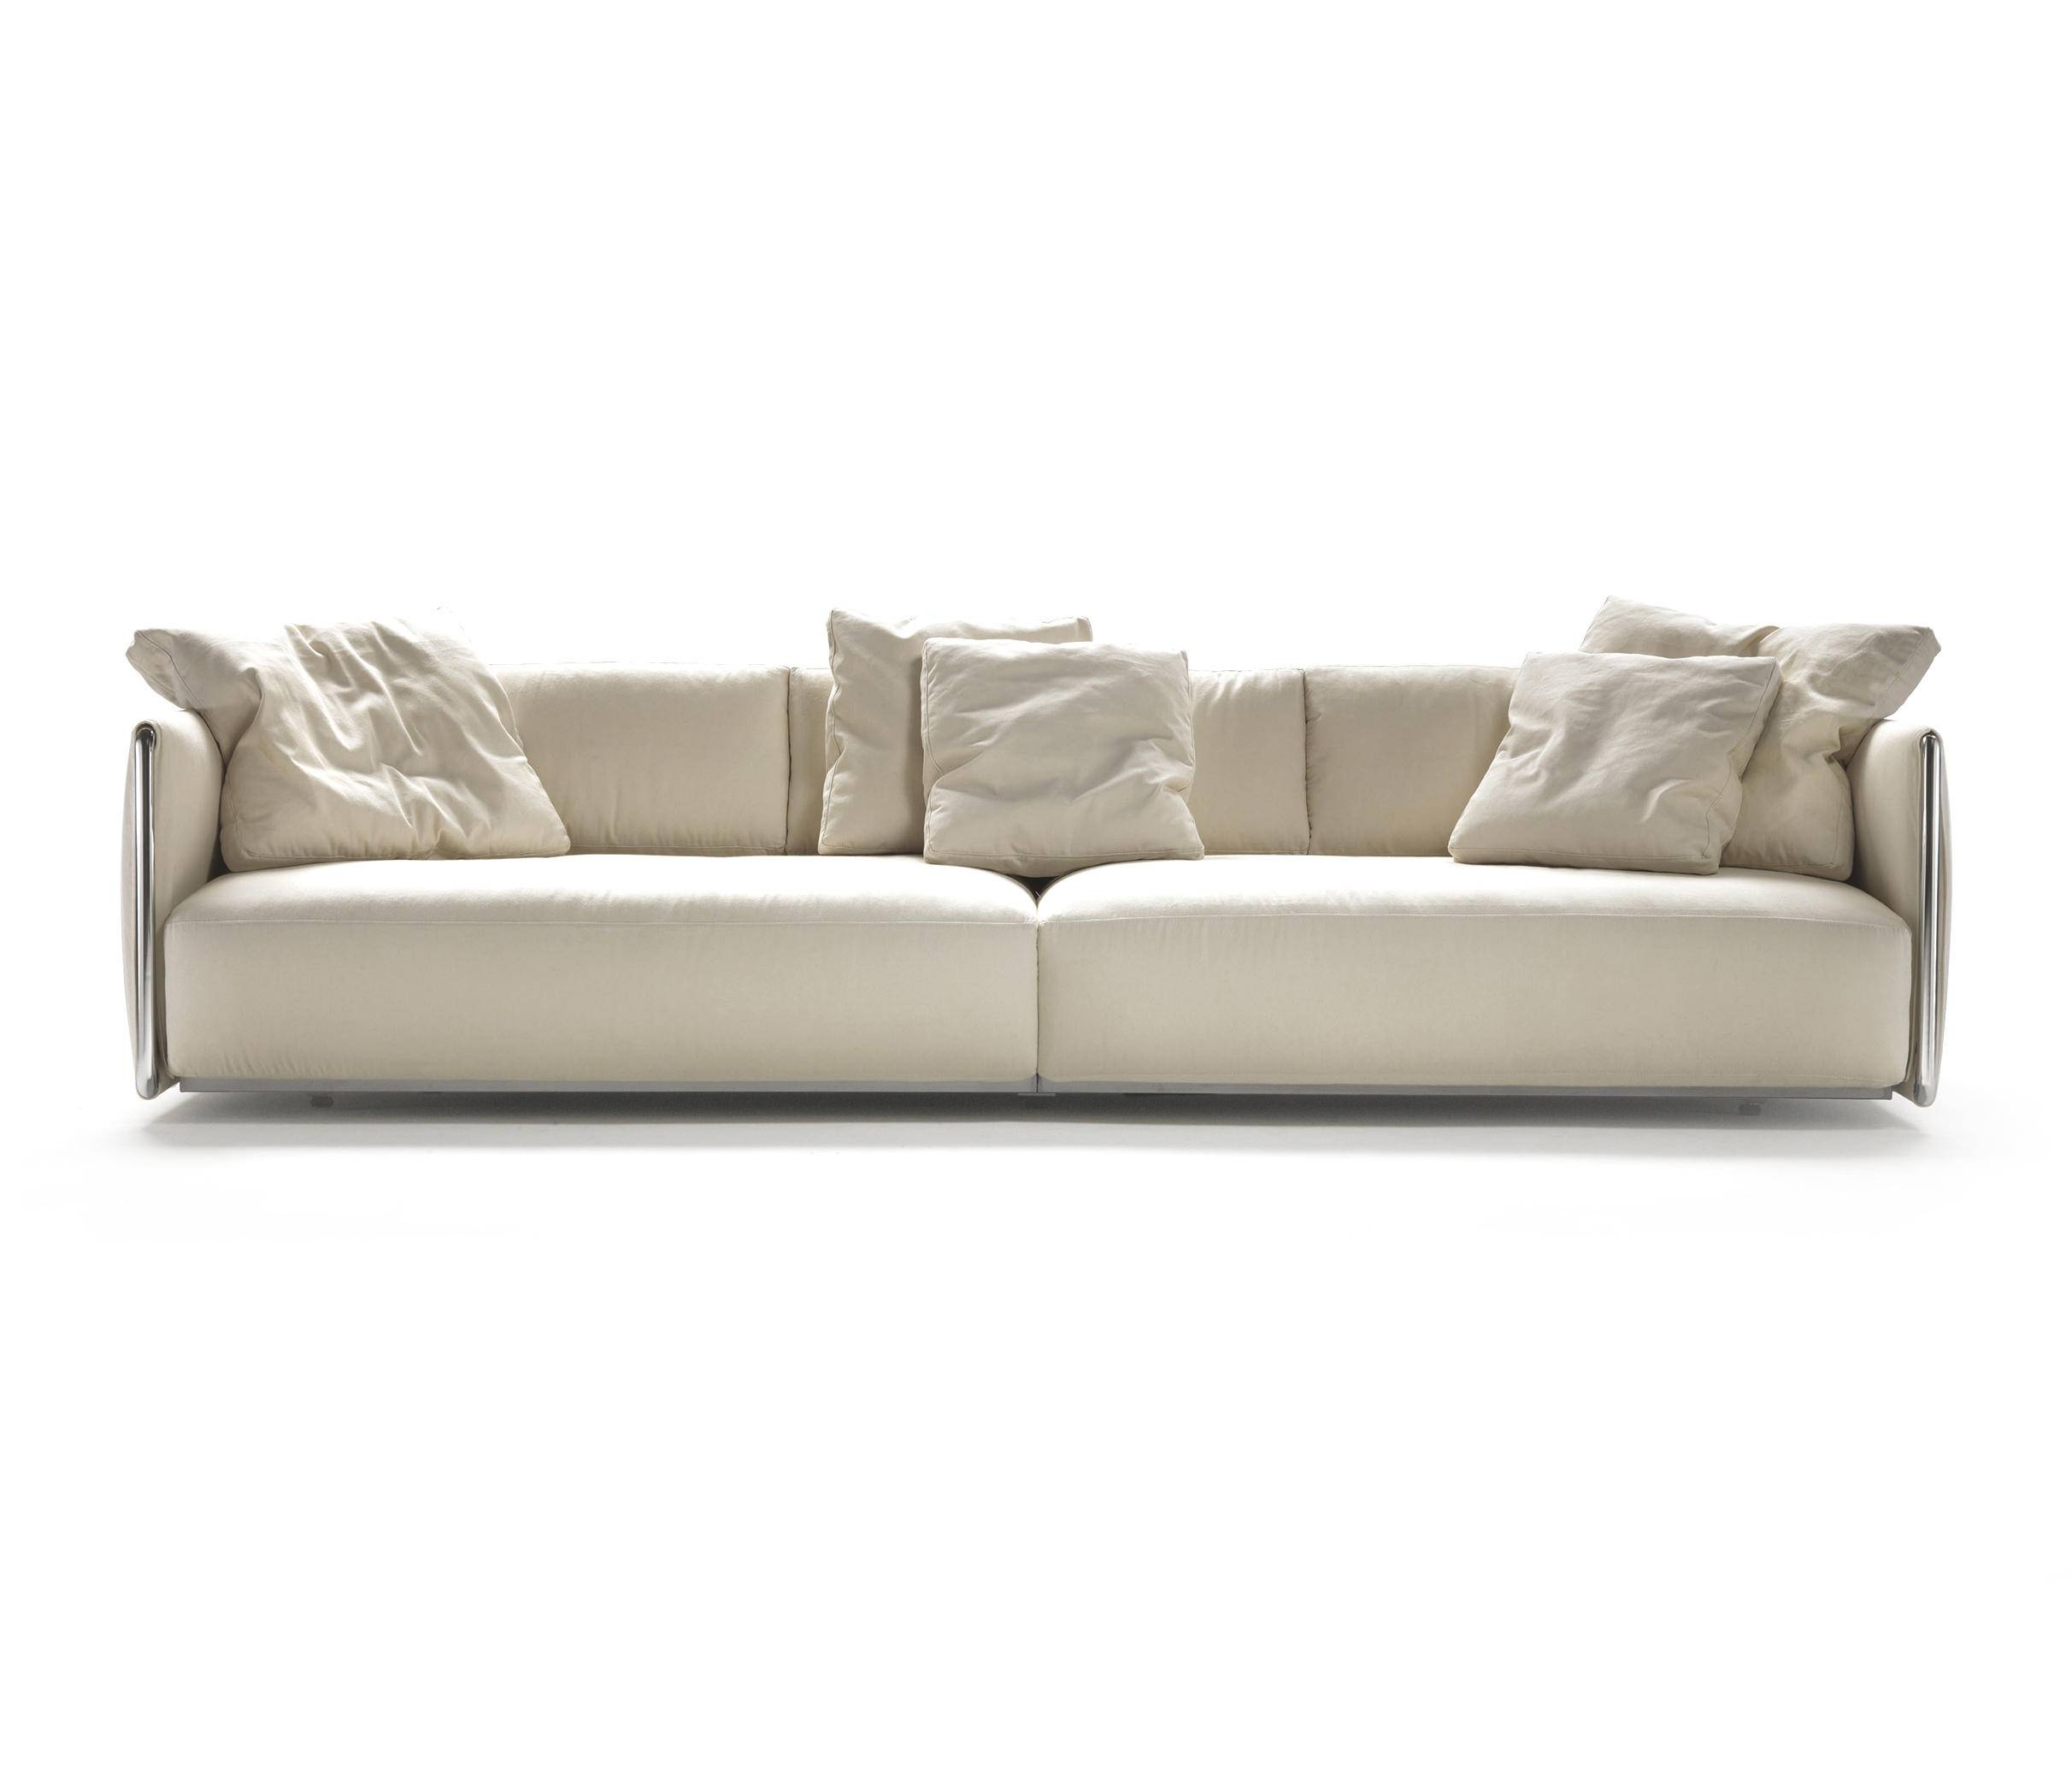 Edmond Sofa - Lounge Sofas From Flexform | Architonic within Flexform Sofas (Image 3 of 25)